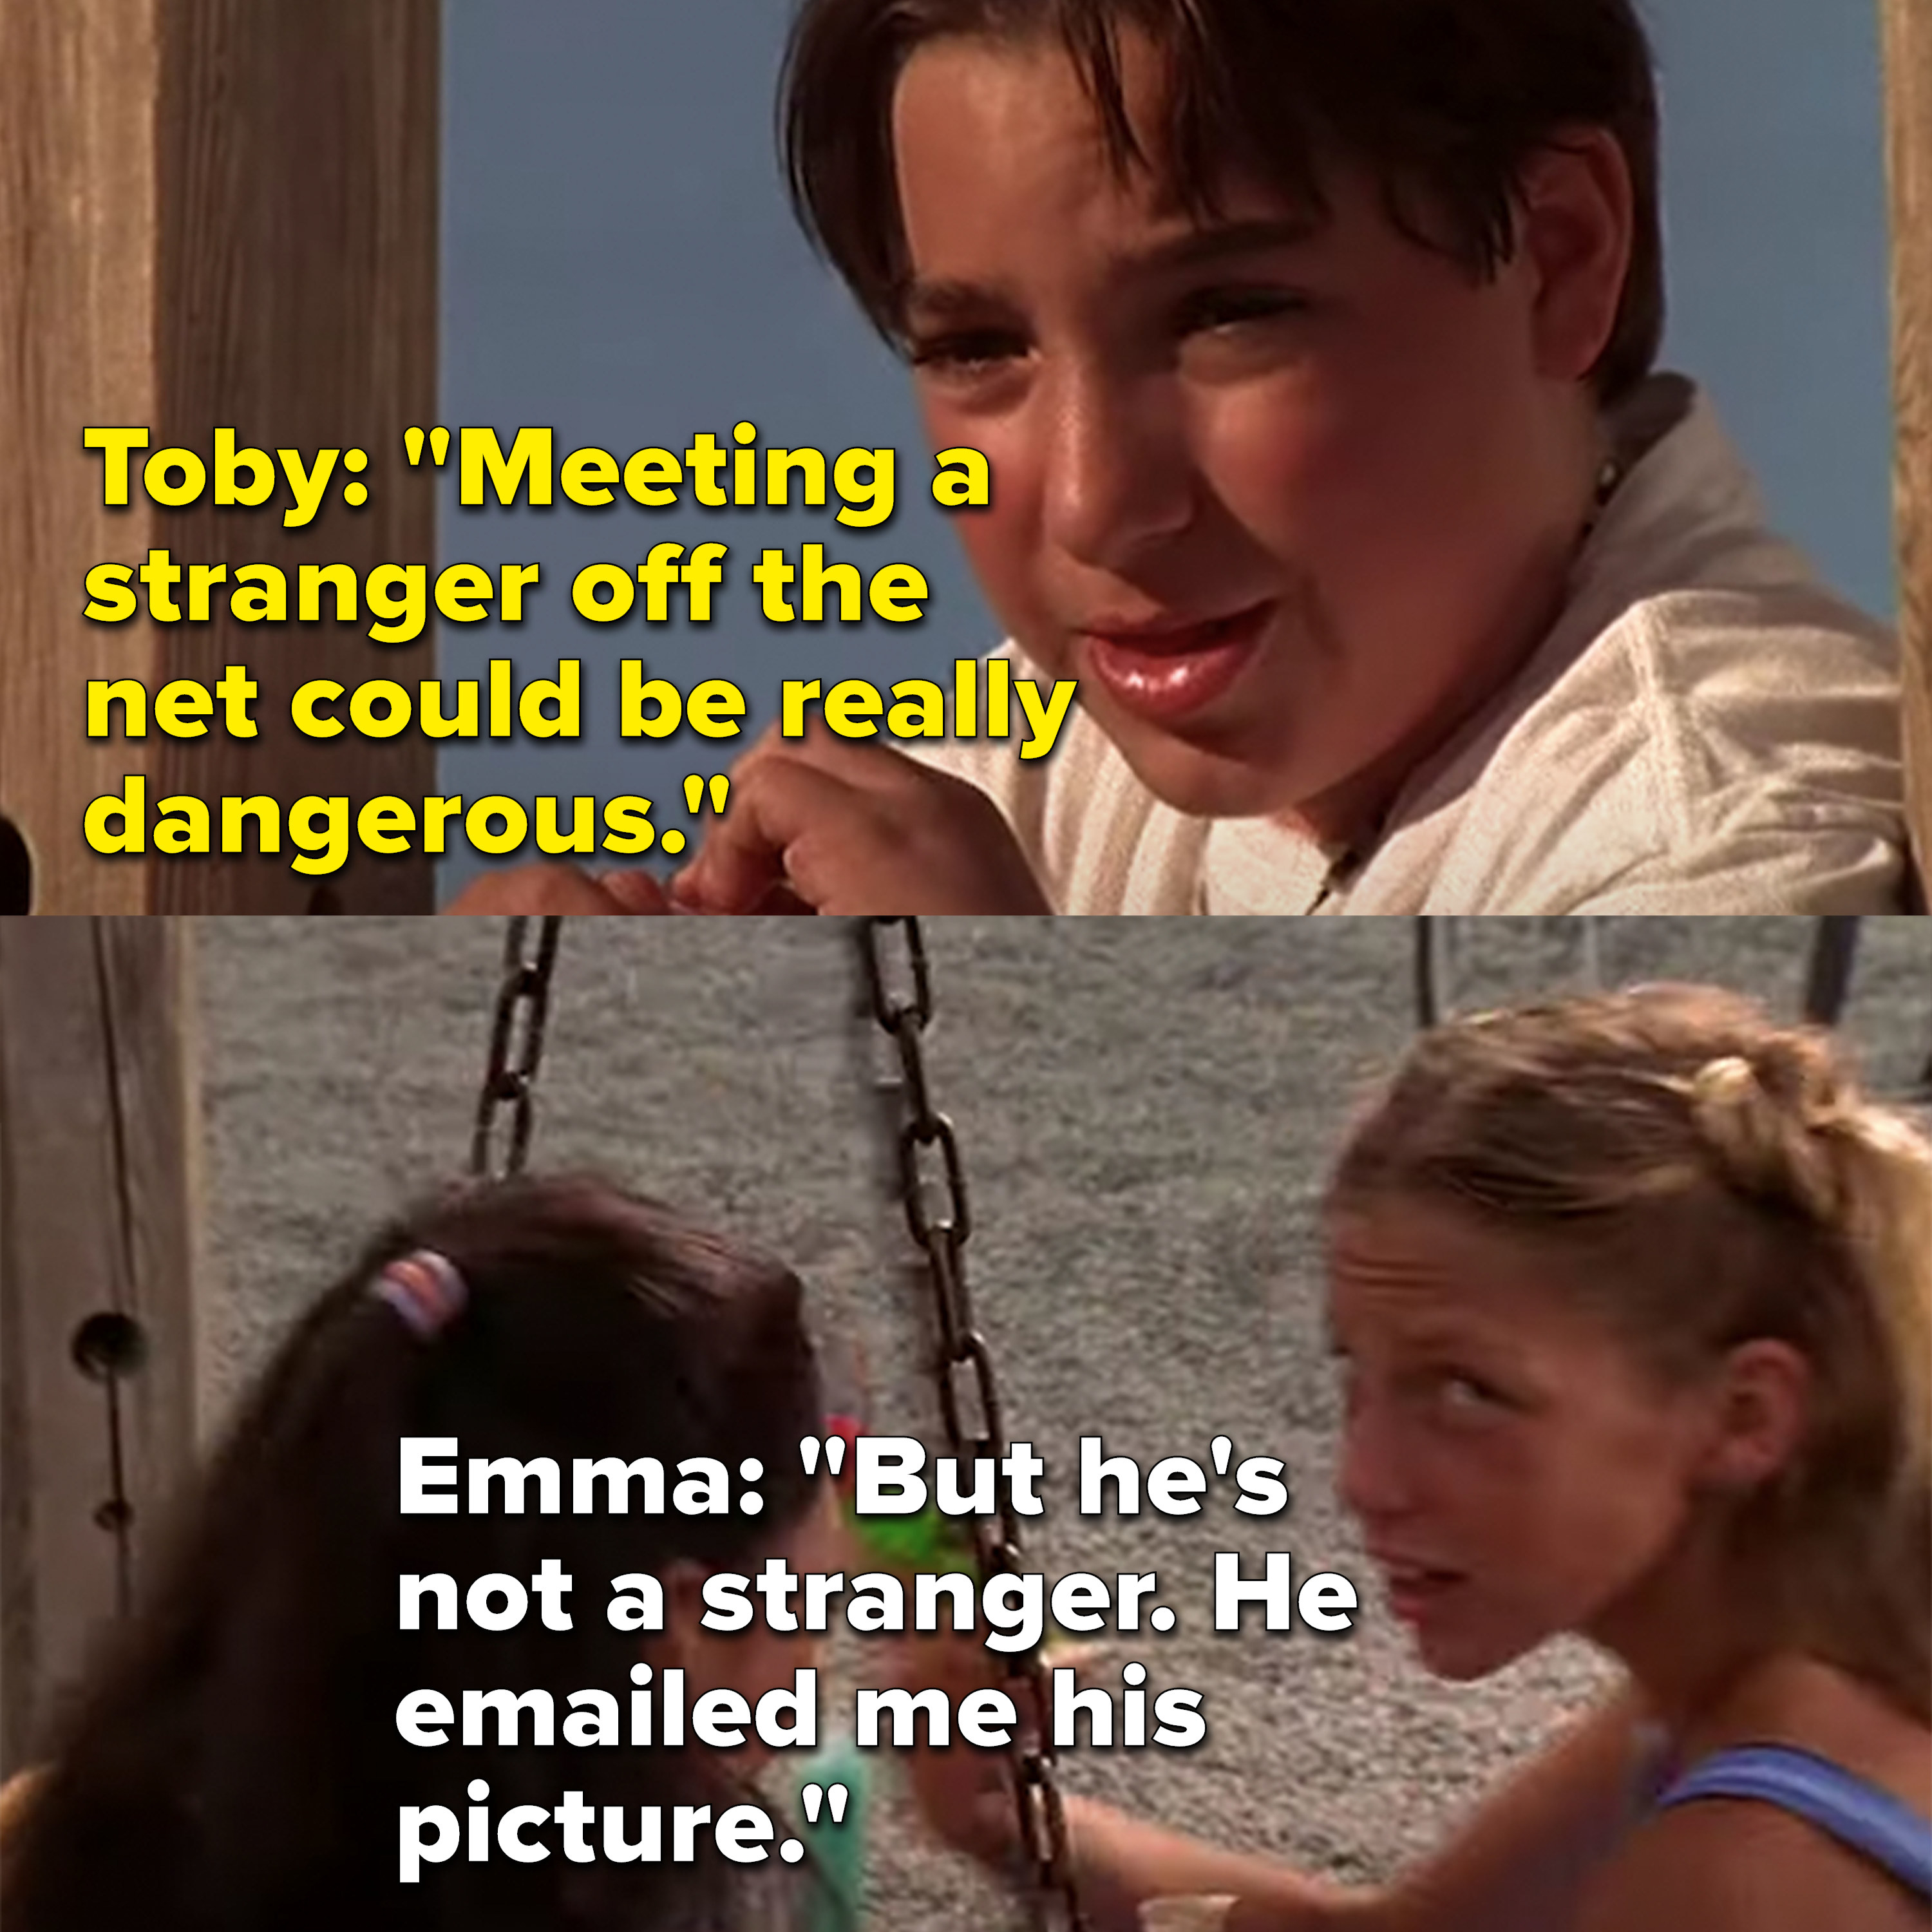 Toby tells Emma meeting a stranger from the net is dangerous and Emma says he's not a stranger because he emailed her his picture